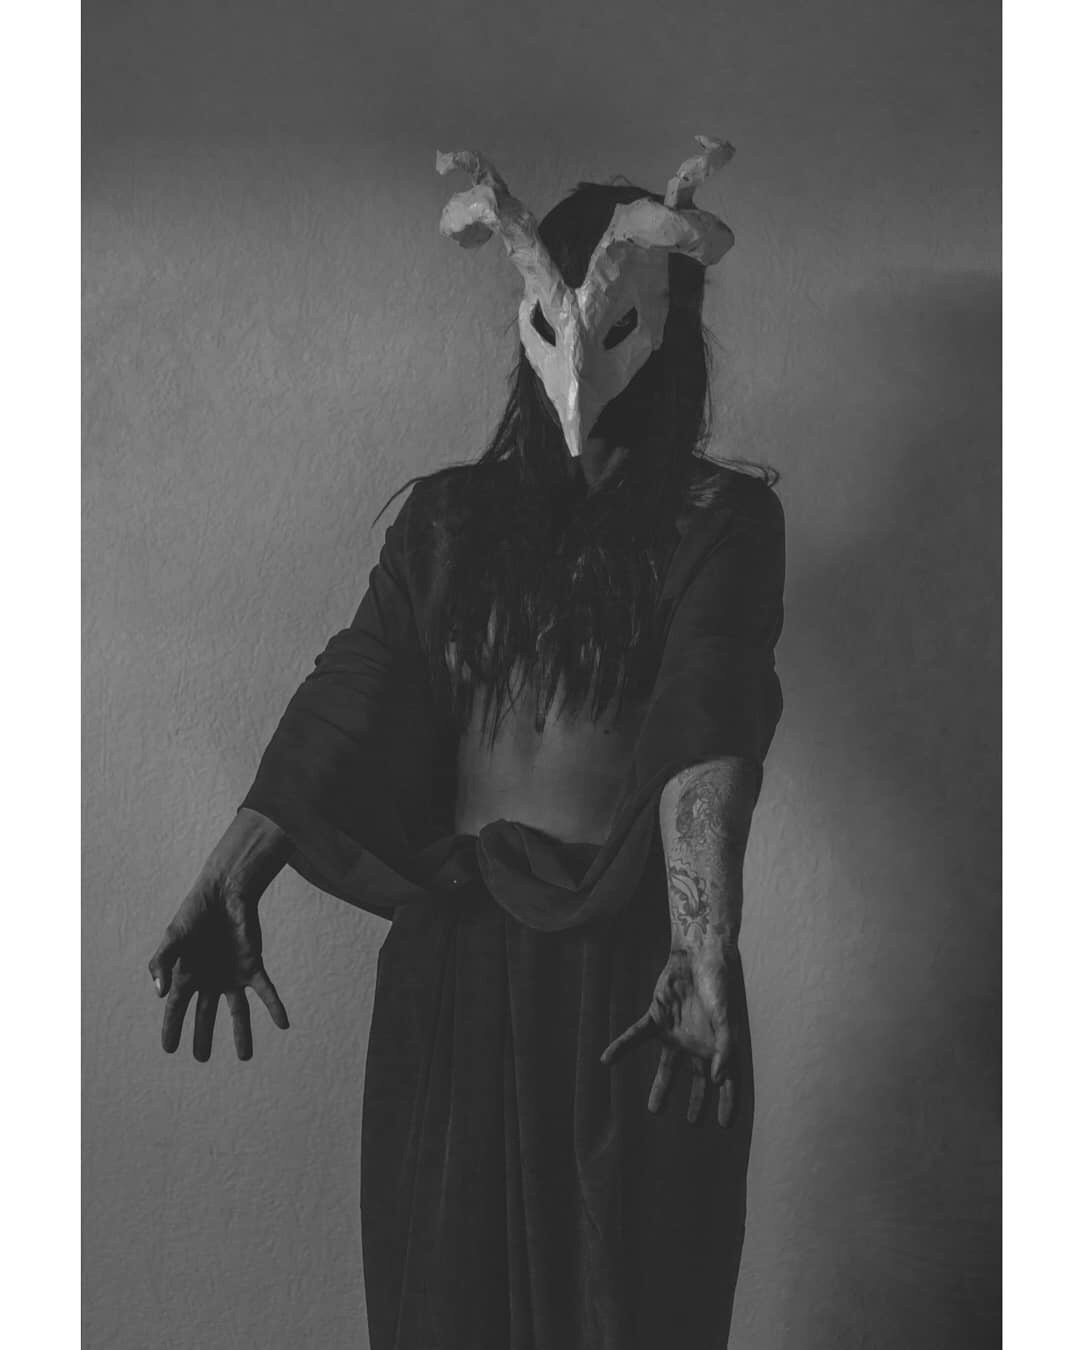 Edda Tråcklare, photography, dark, obscure, occult